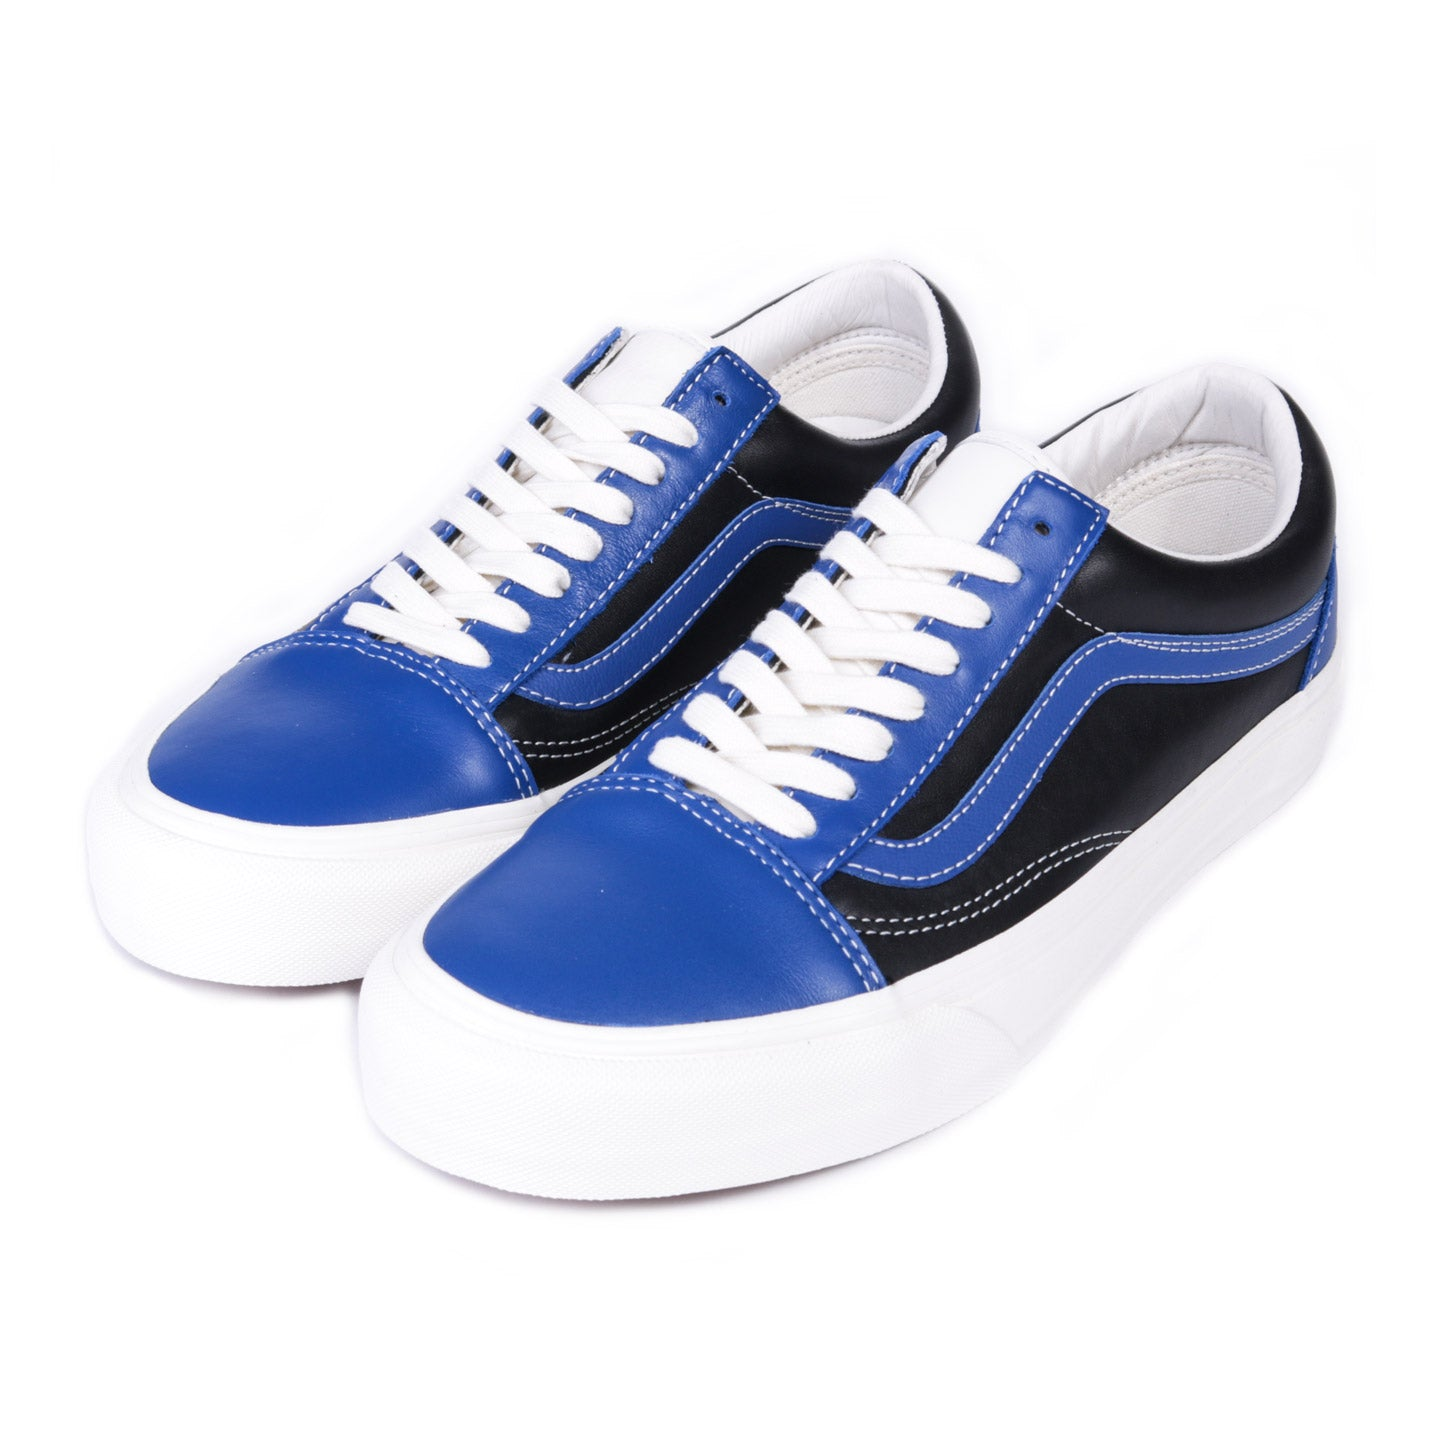 VAULT BY VANS OLD SKOOL VLT LX TRUE BLUE / BLACK